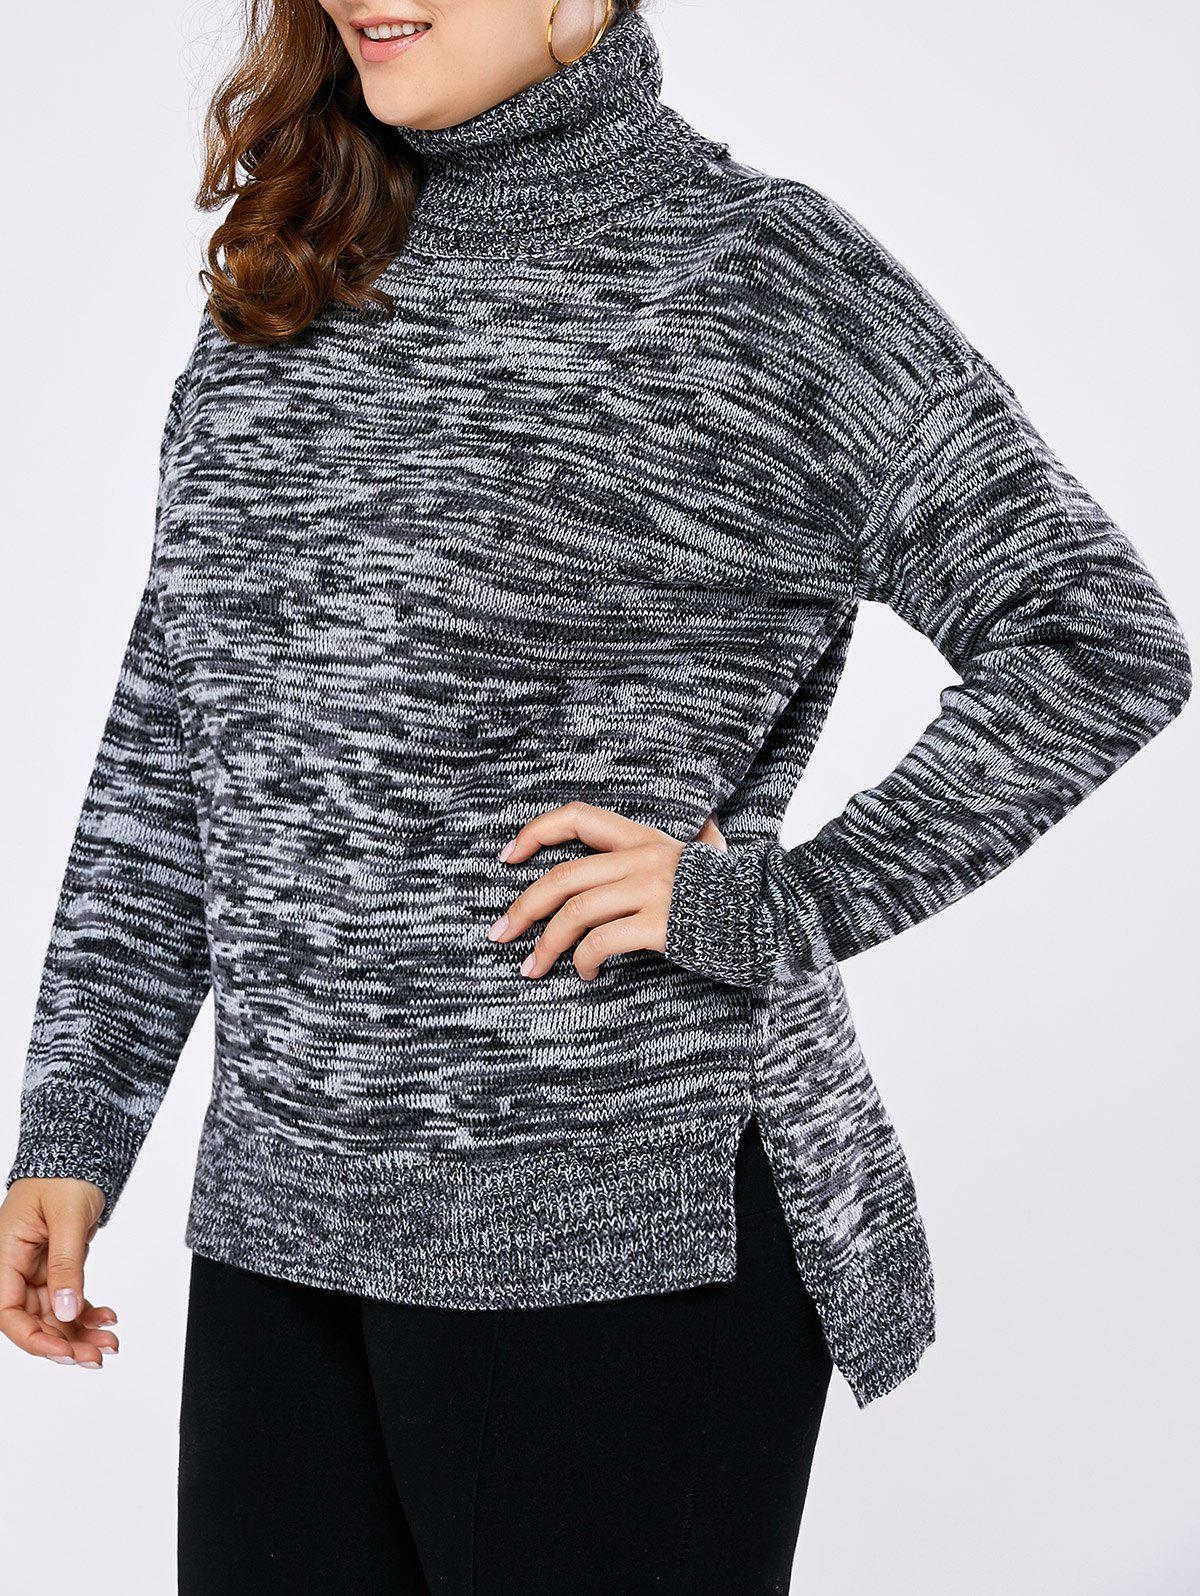 Plus Size Drop Shoulder High Low Turtleneck Sweater - GRAY 5XL